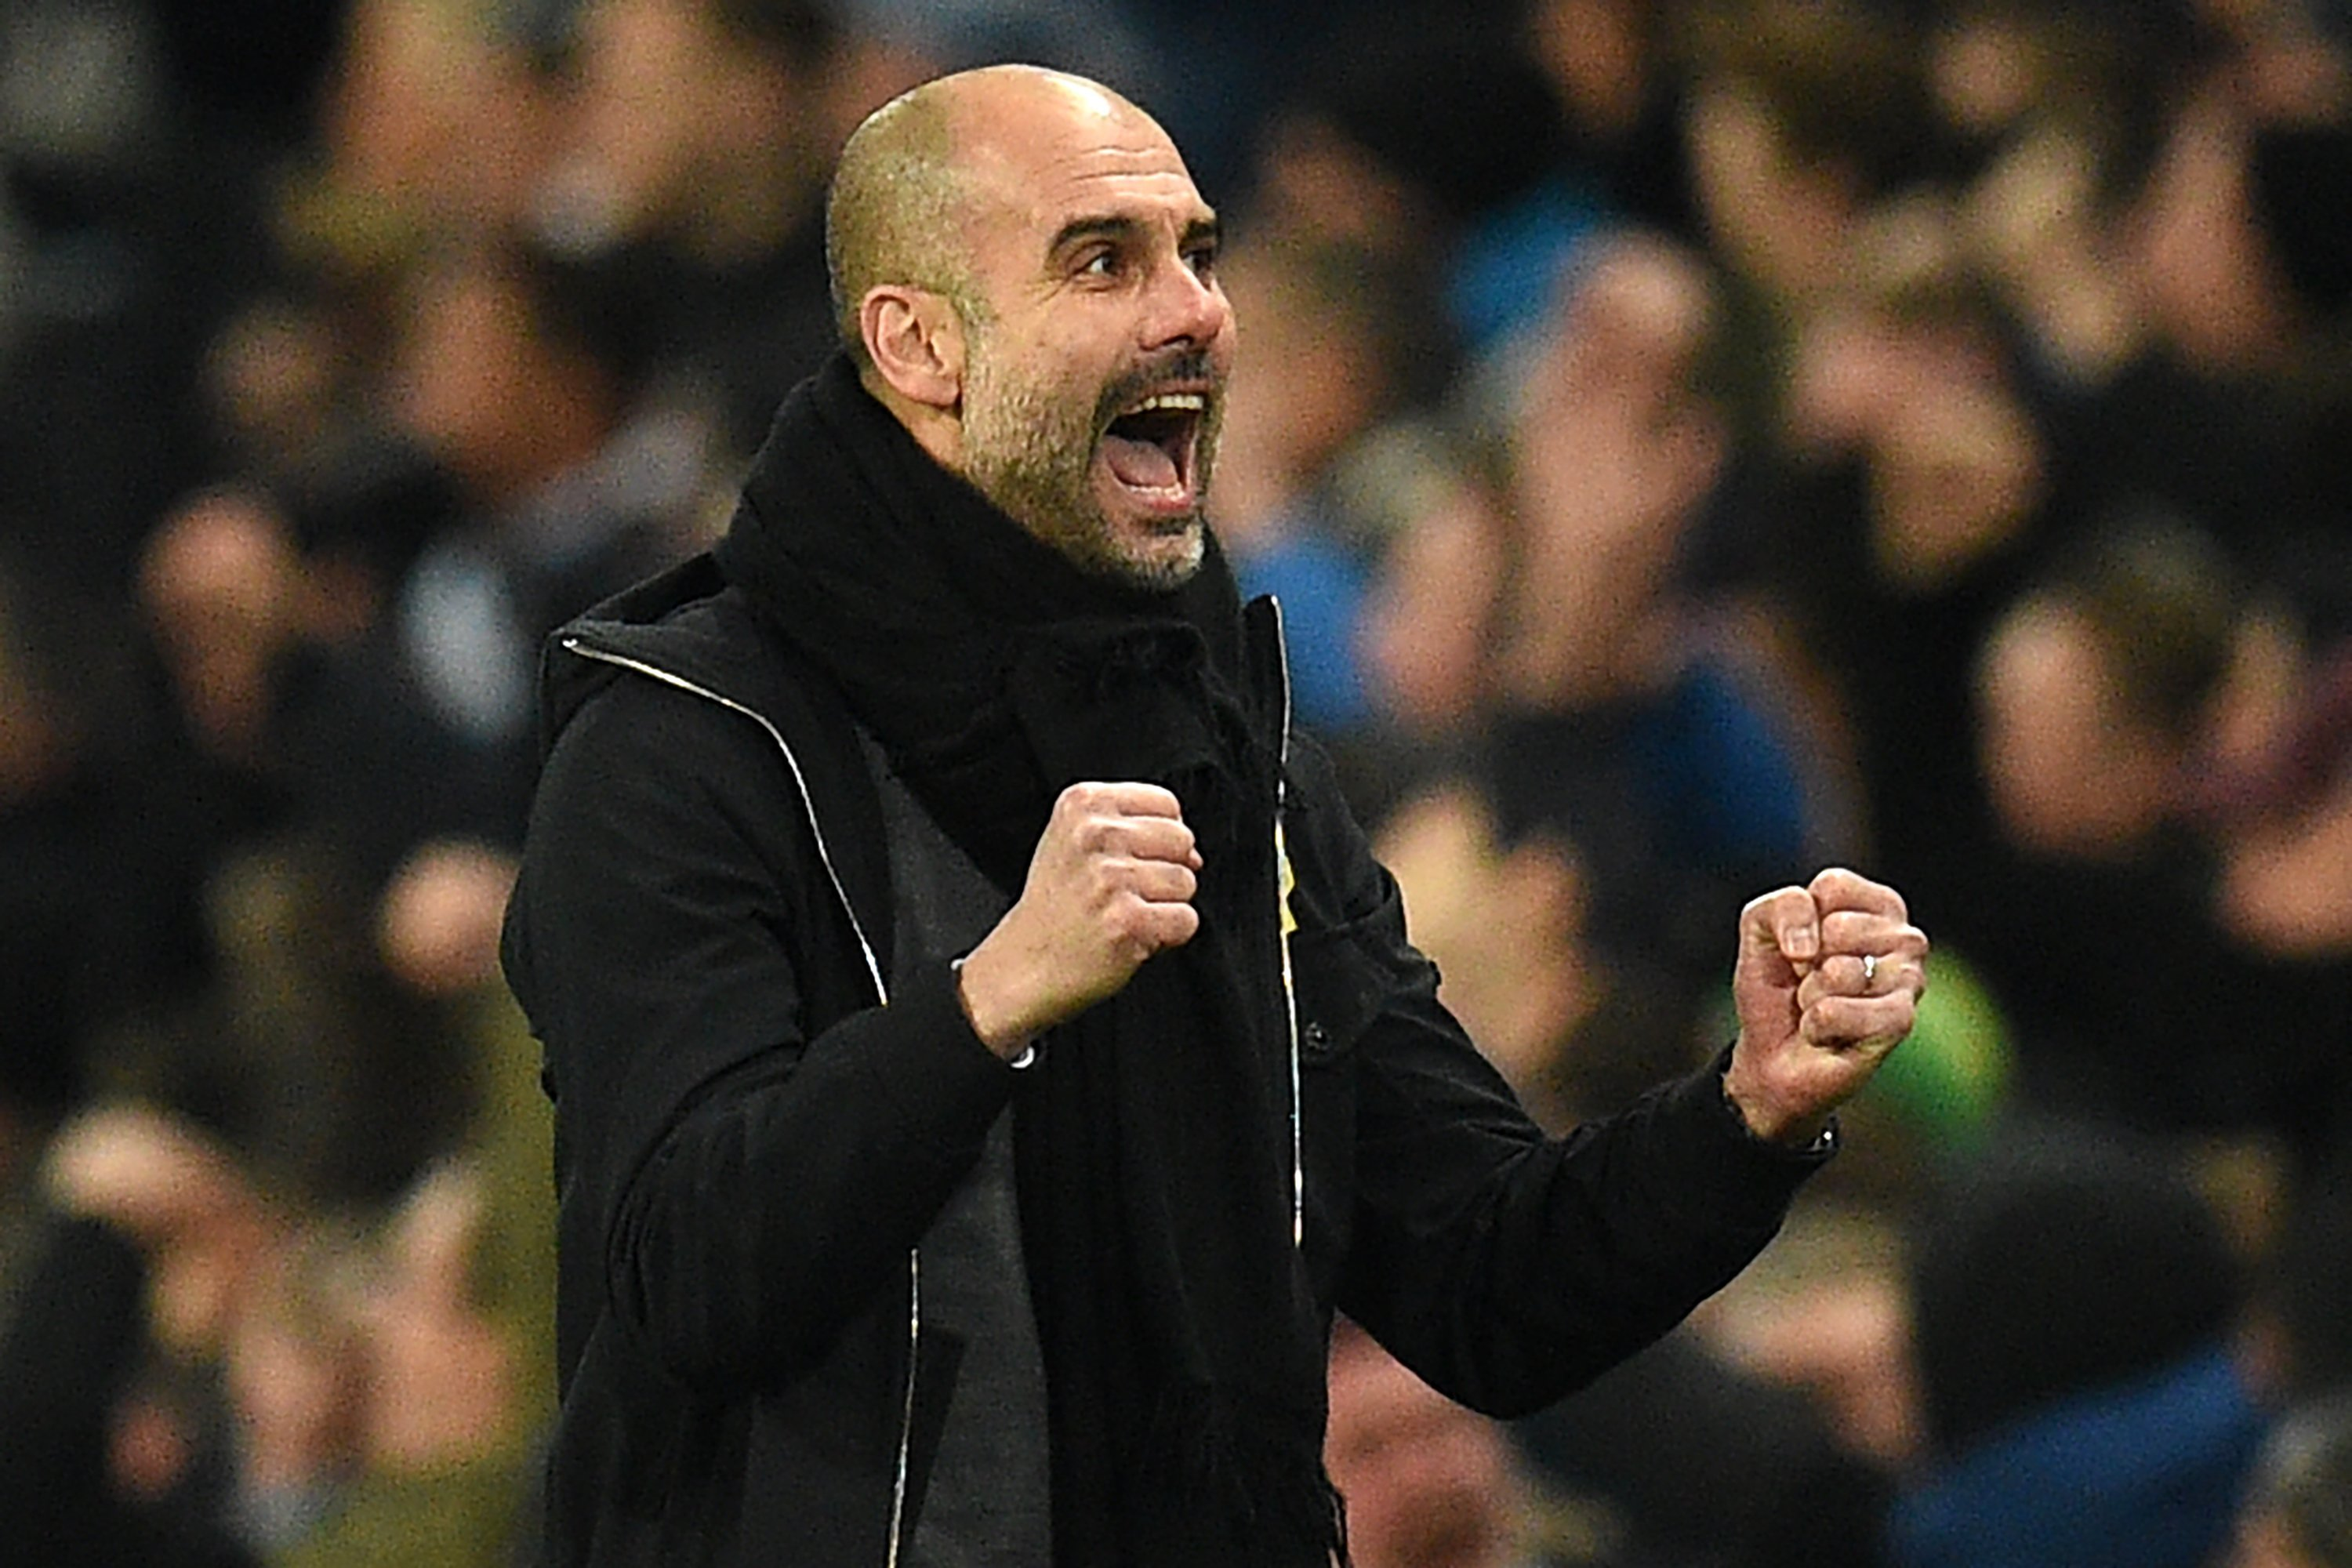 Guardiola's City side has scored almost three goals every league game.